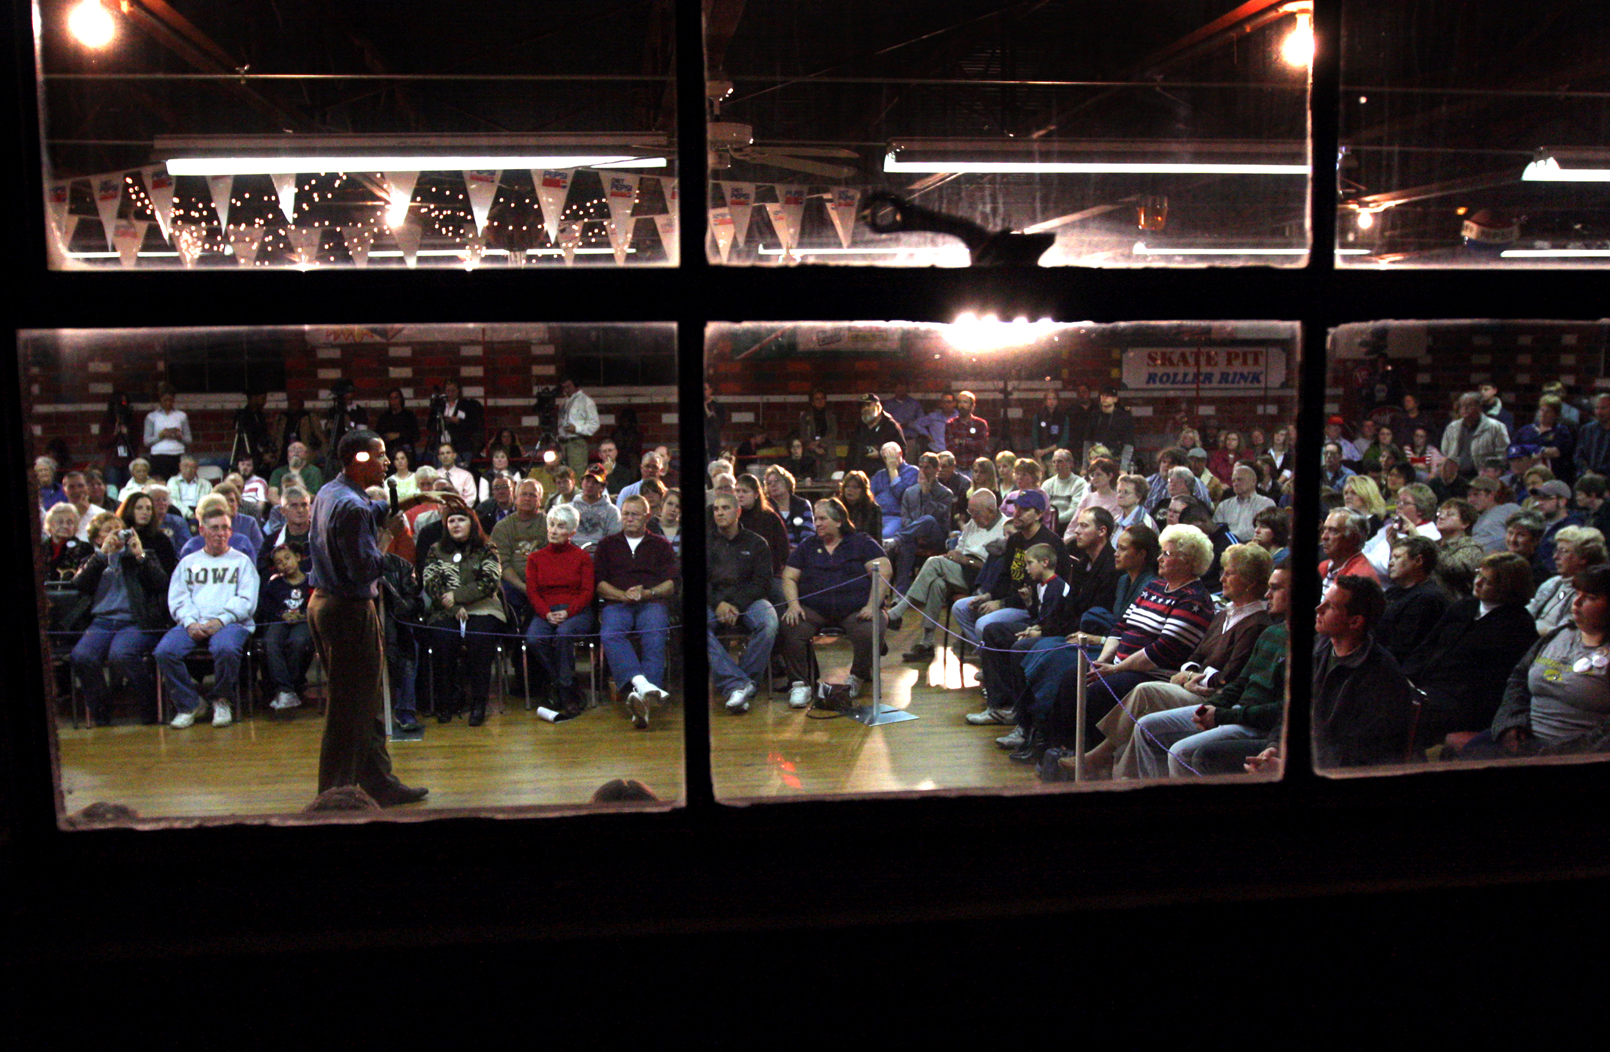 U.S. Presidential hopeful Sen. Barack Obama (D-IL), as seen through the window of a skating rink, speaks to a crowd gathered in Chariton, Iowa, on Nov. 08, 2007.